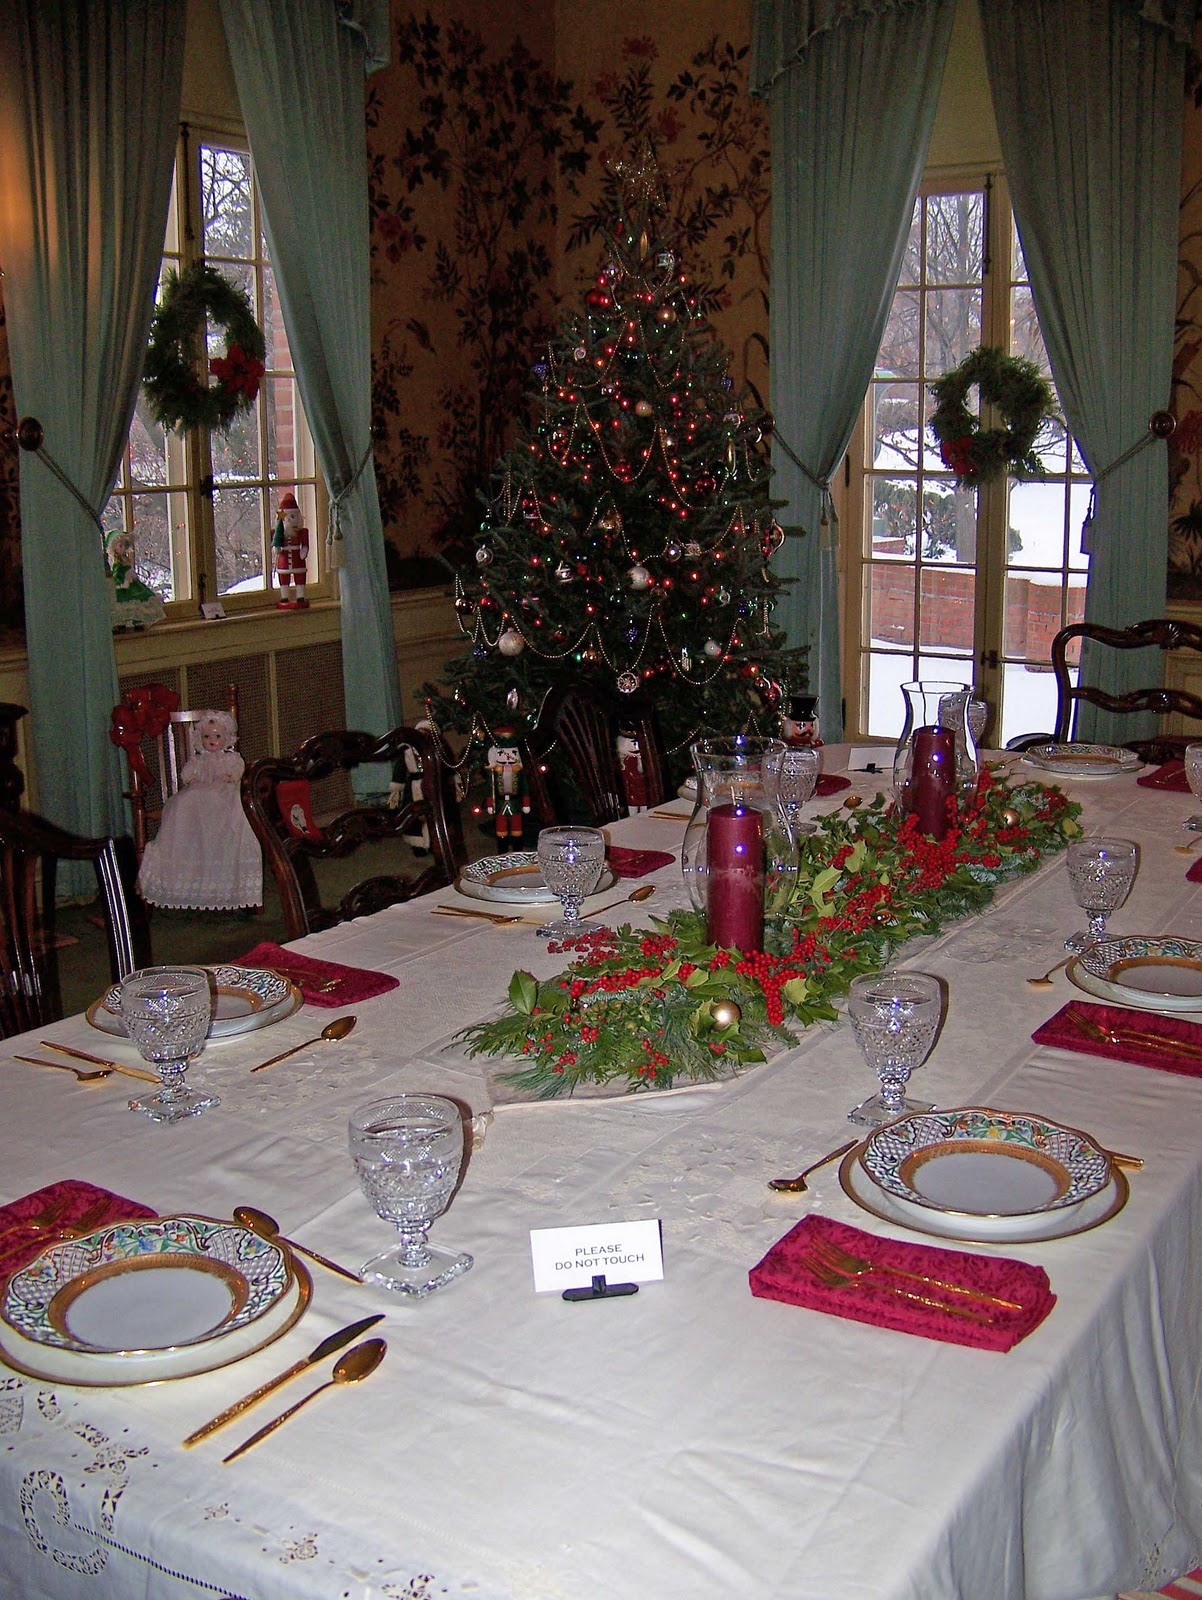 Discovering kingwood center christmas traditions an old for Old fashioned dining room tables